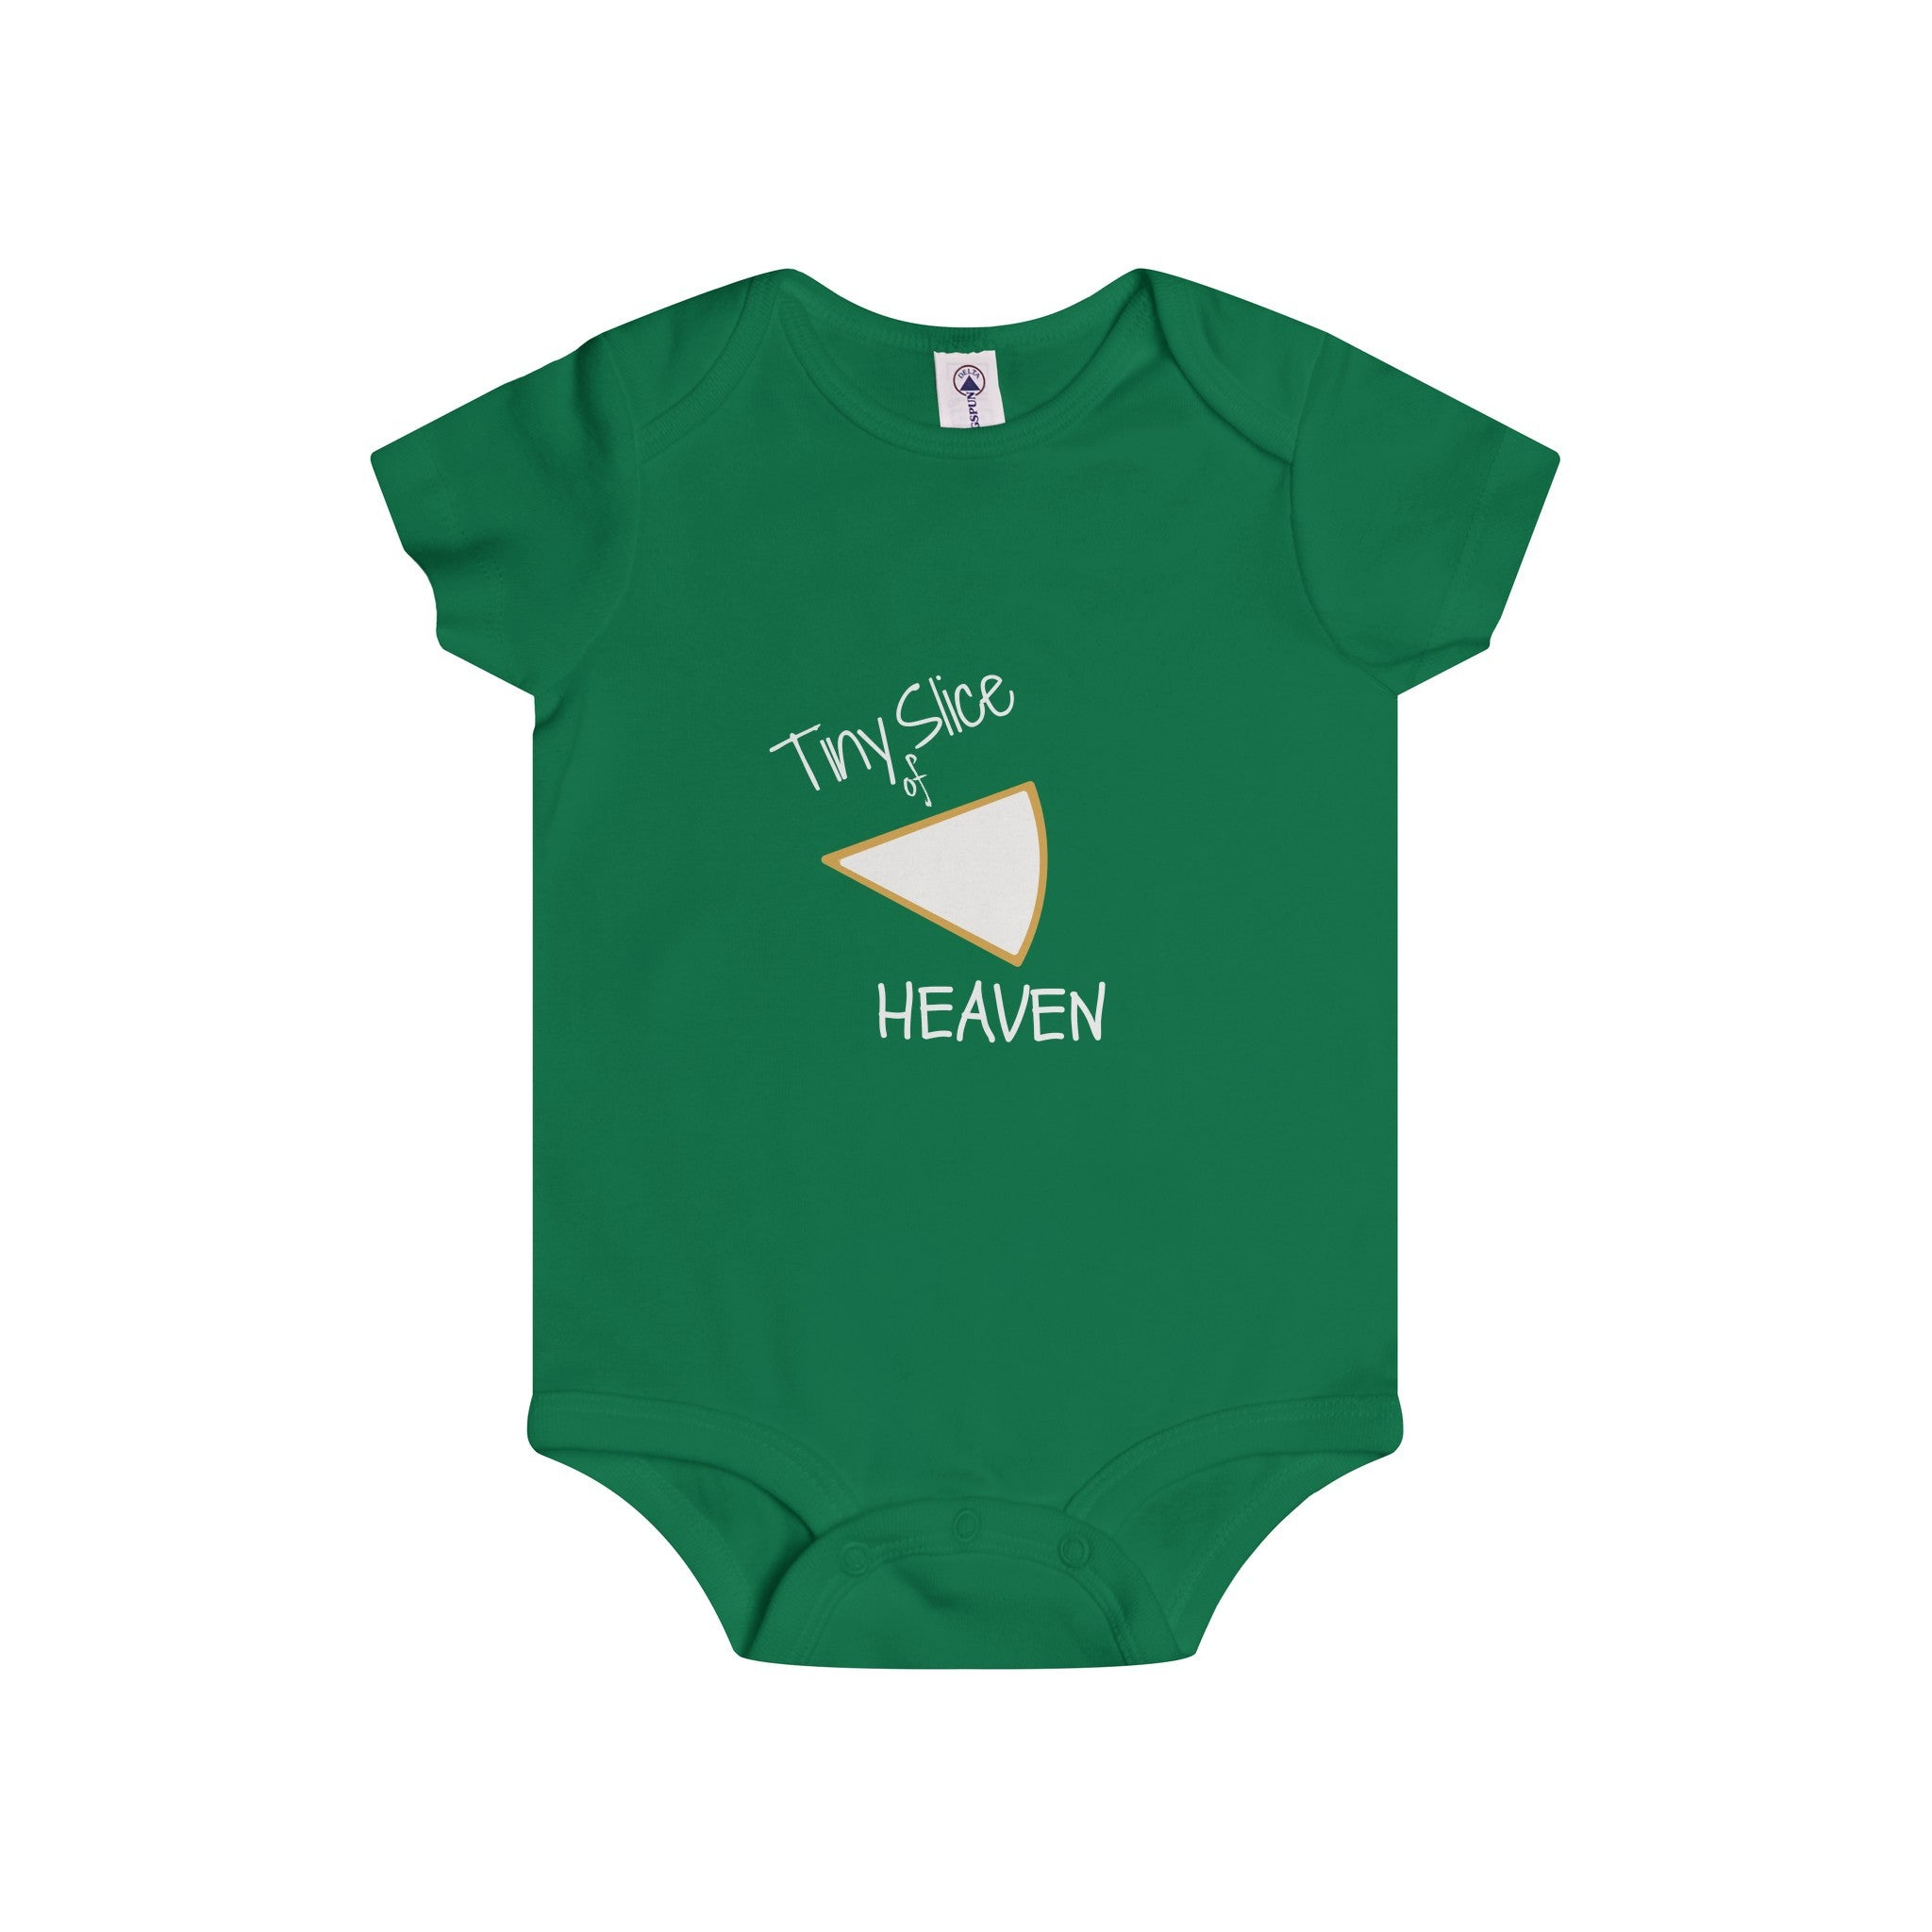 Tiny Slice of Heaven Onesie (4 colors available)